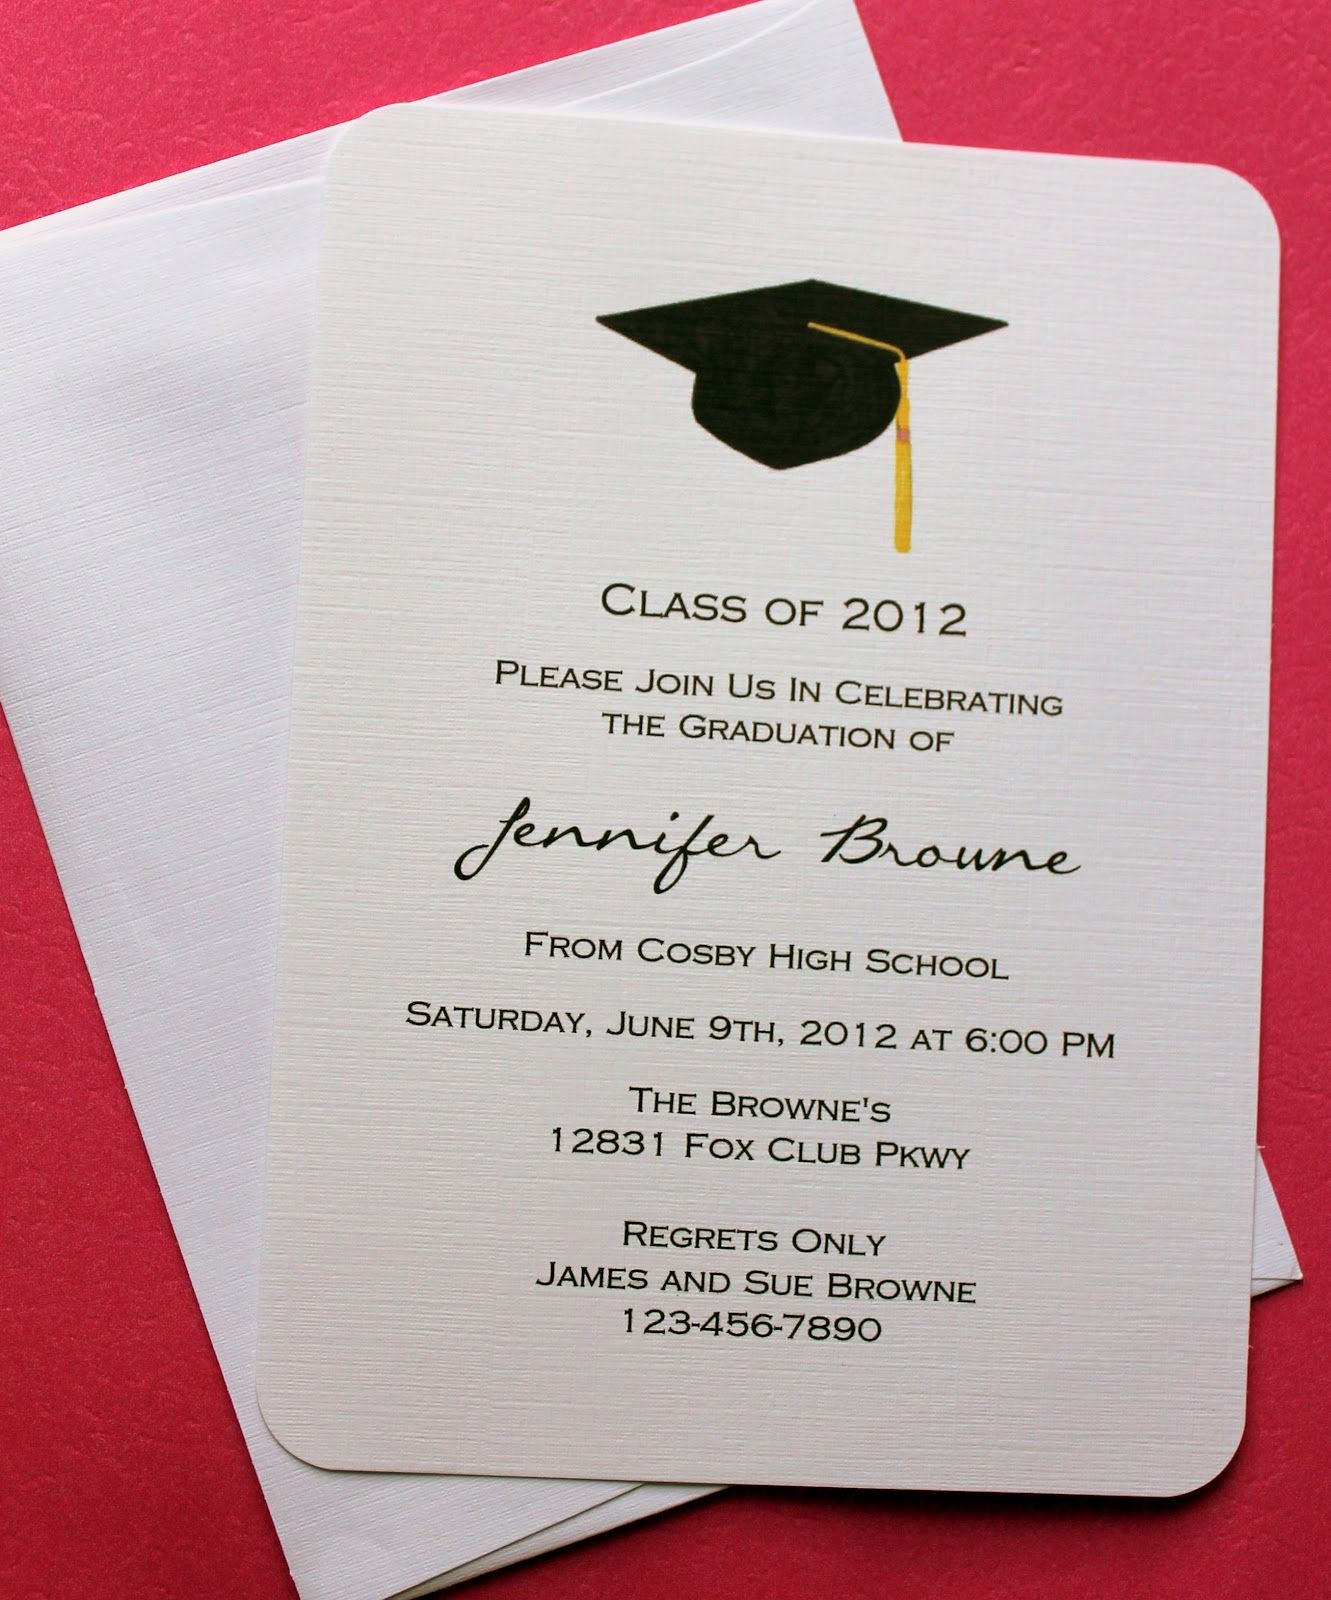 Collection of thousands of free graduation invitation template collection of thousands of free graduation invitation template from all over the world stopboris Choice Image